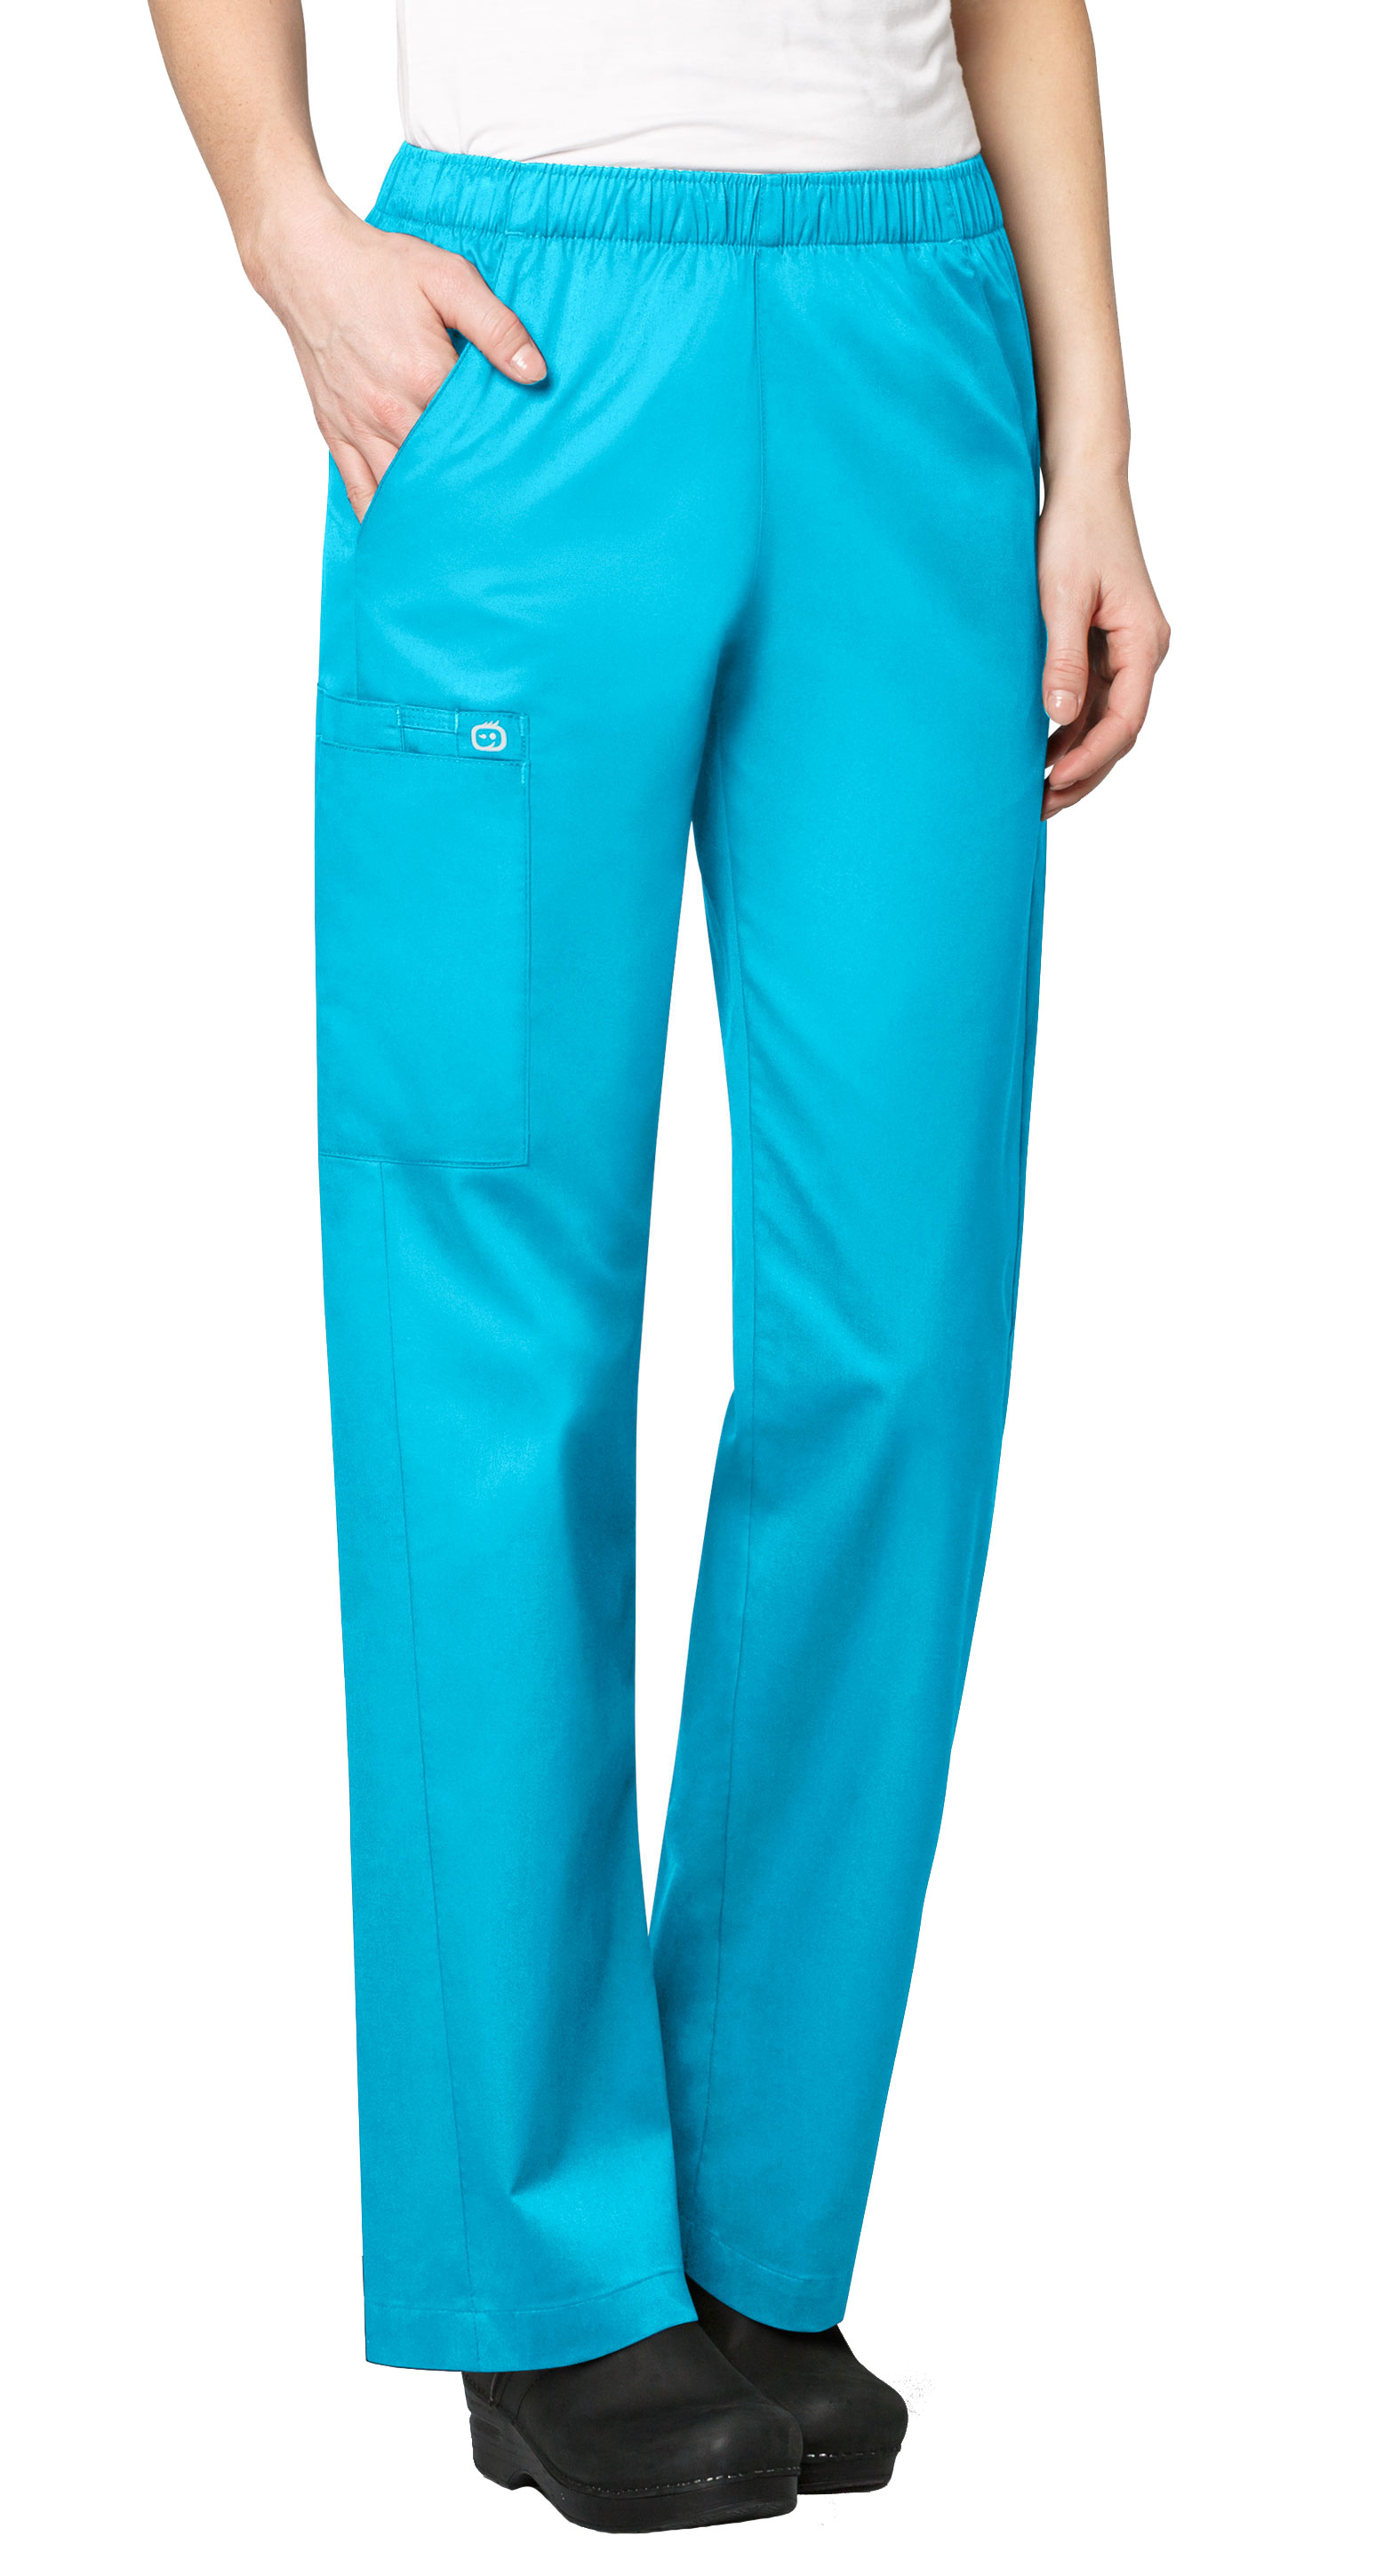 Womens Elastic Waist Pant by WonderWink®